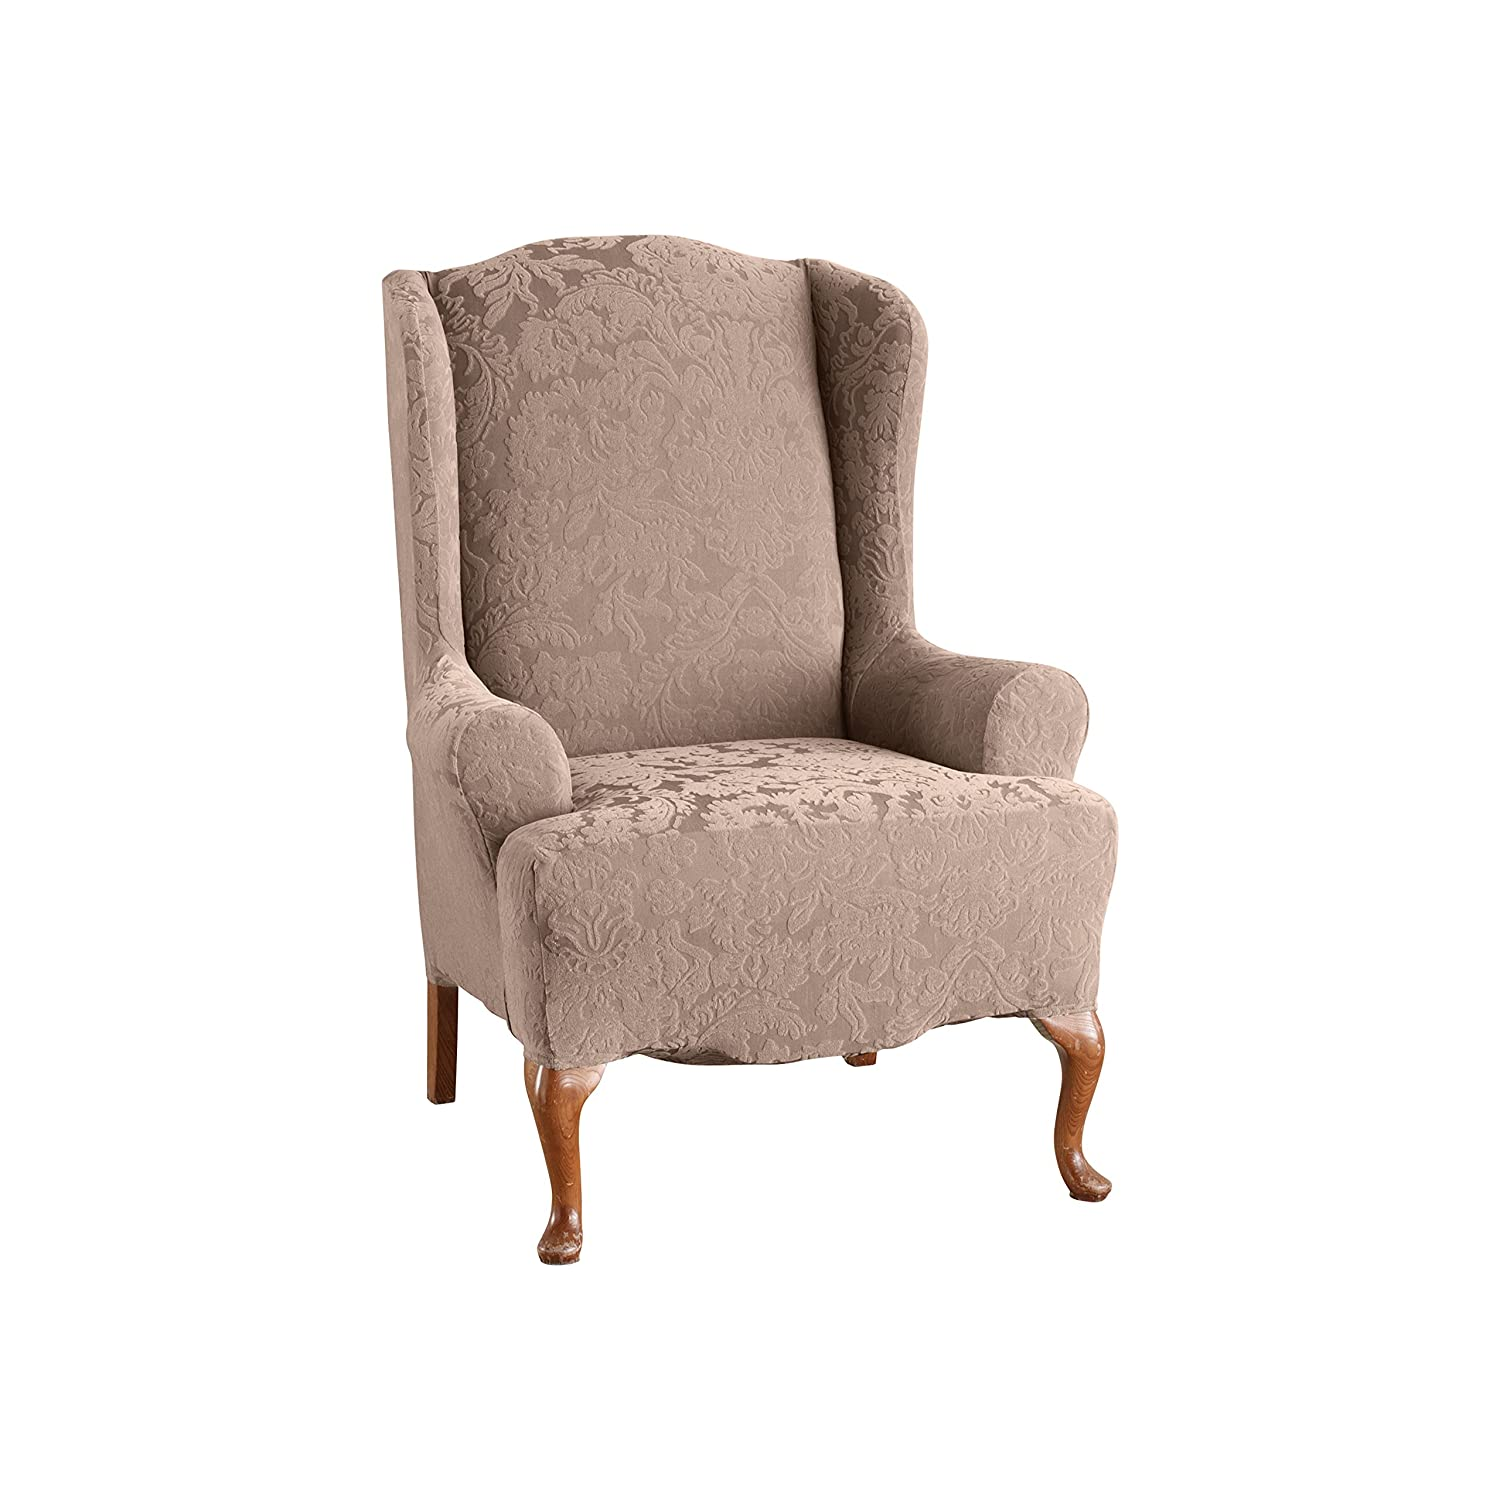 Amazon.com: Sure Fit Stretch Jacquard Damask   Wing Chair Slipcover    Mushroom (SF39614): Home U0026 Kitchen